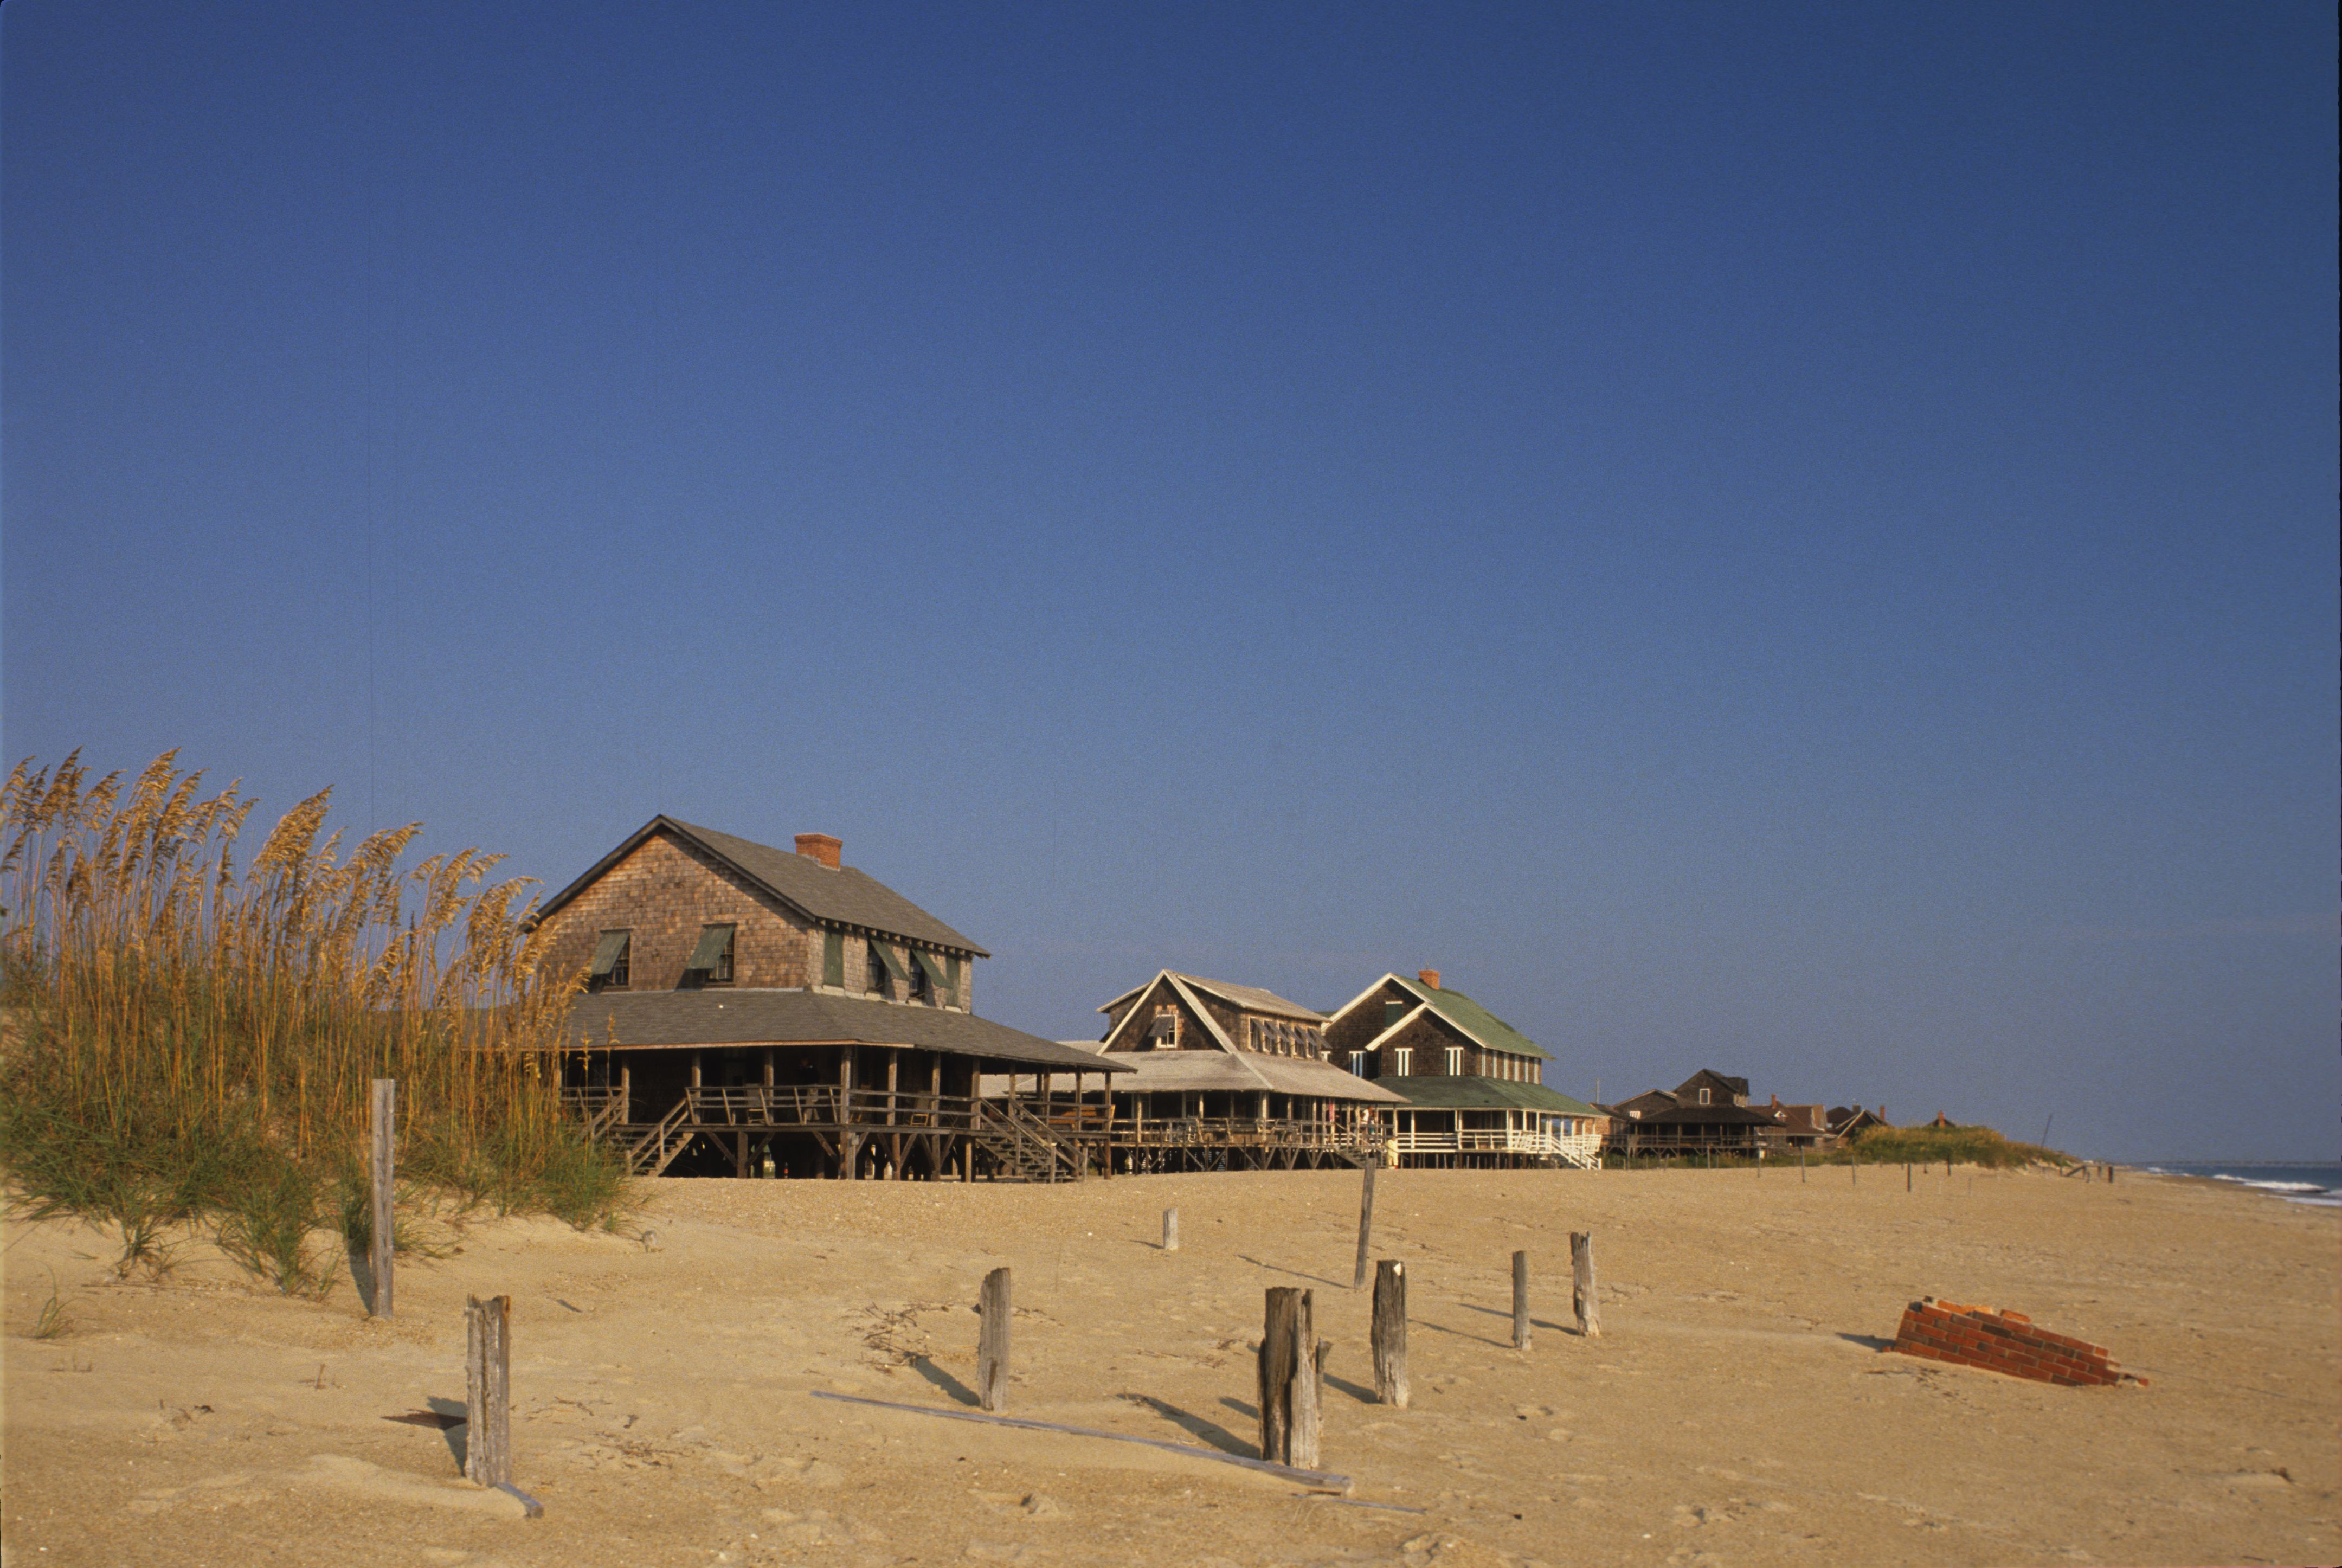 inn romantic getaway nags head on beach cottages with a is outer perfect for the pin banks